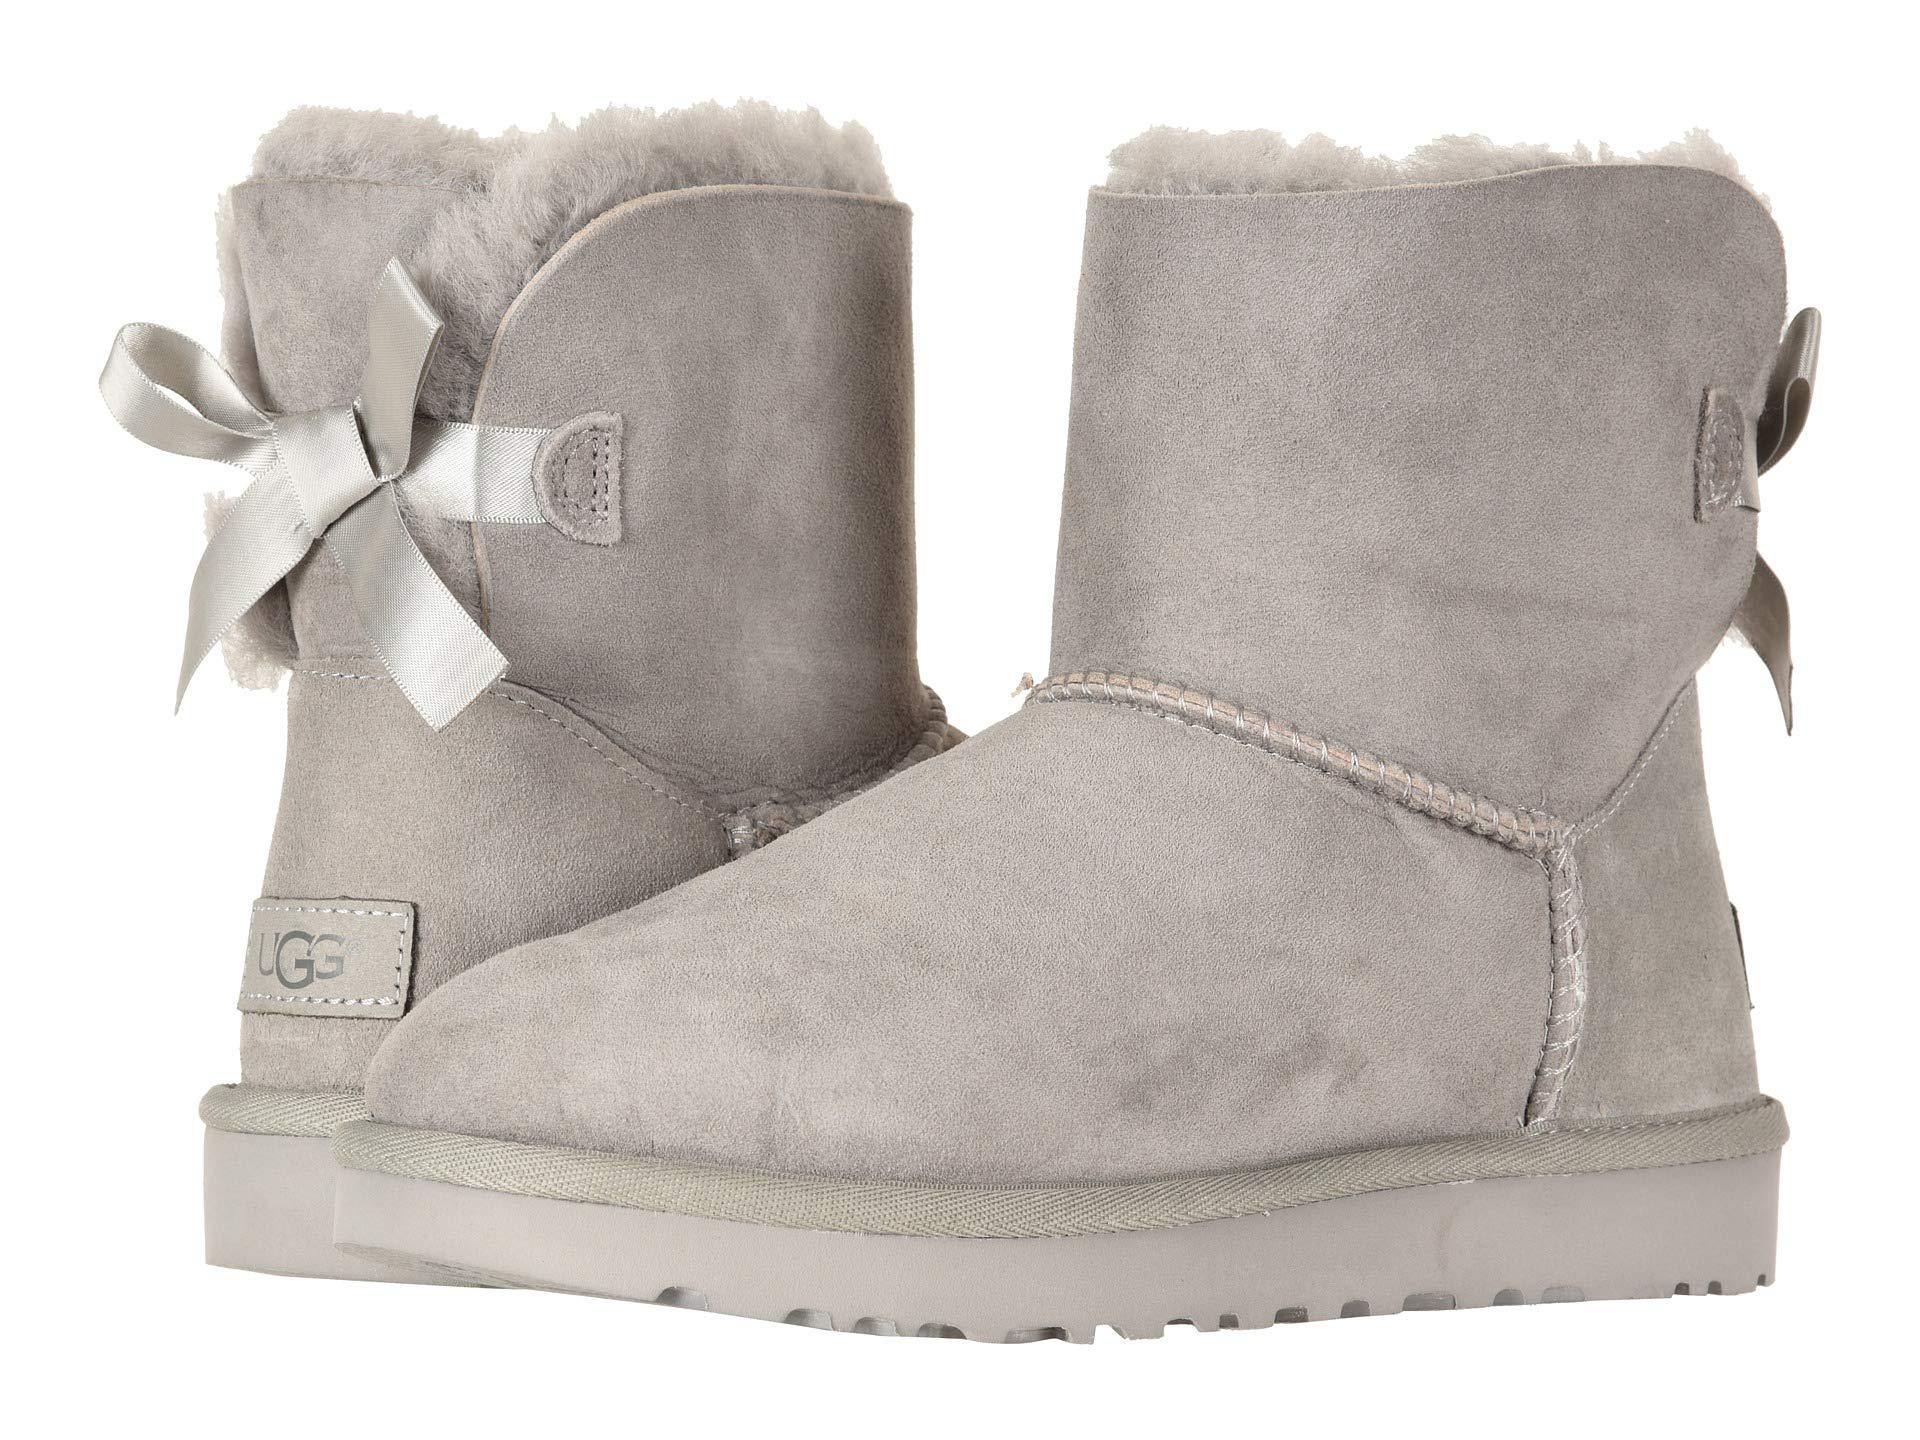 417790f4a3d7 Lyst - UGG Mini Bailey Bow Ii (antilope) Women s Boots in Gray